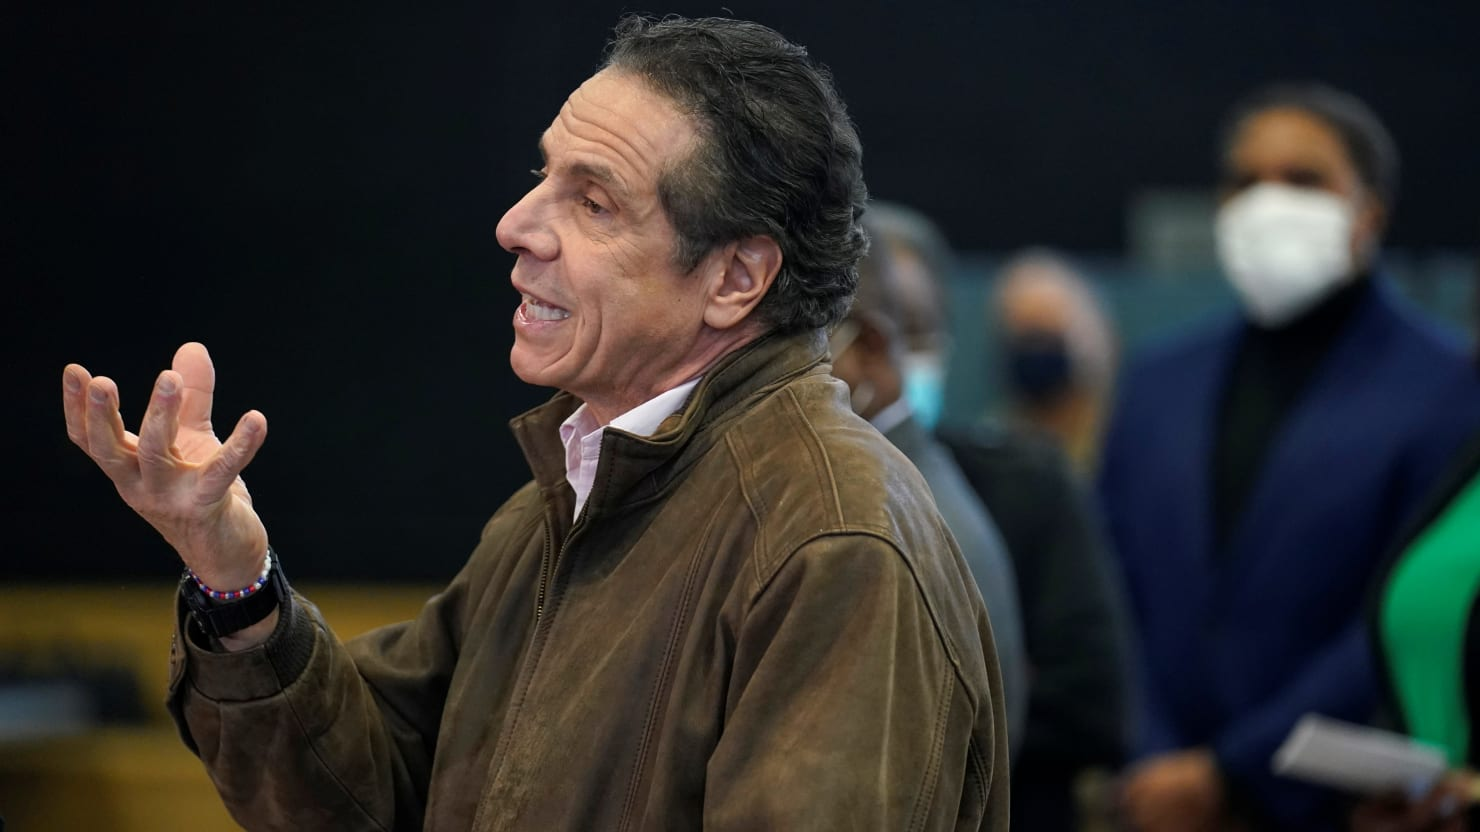 Cuomo Was Always New York's Bad Guy. Here's Why He Was Finally Exposed.